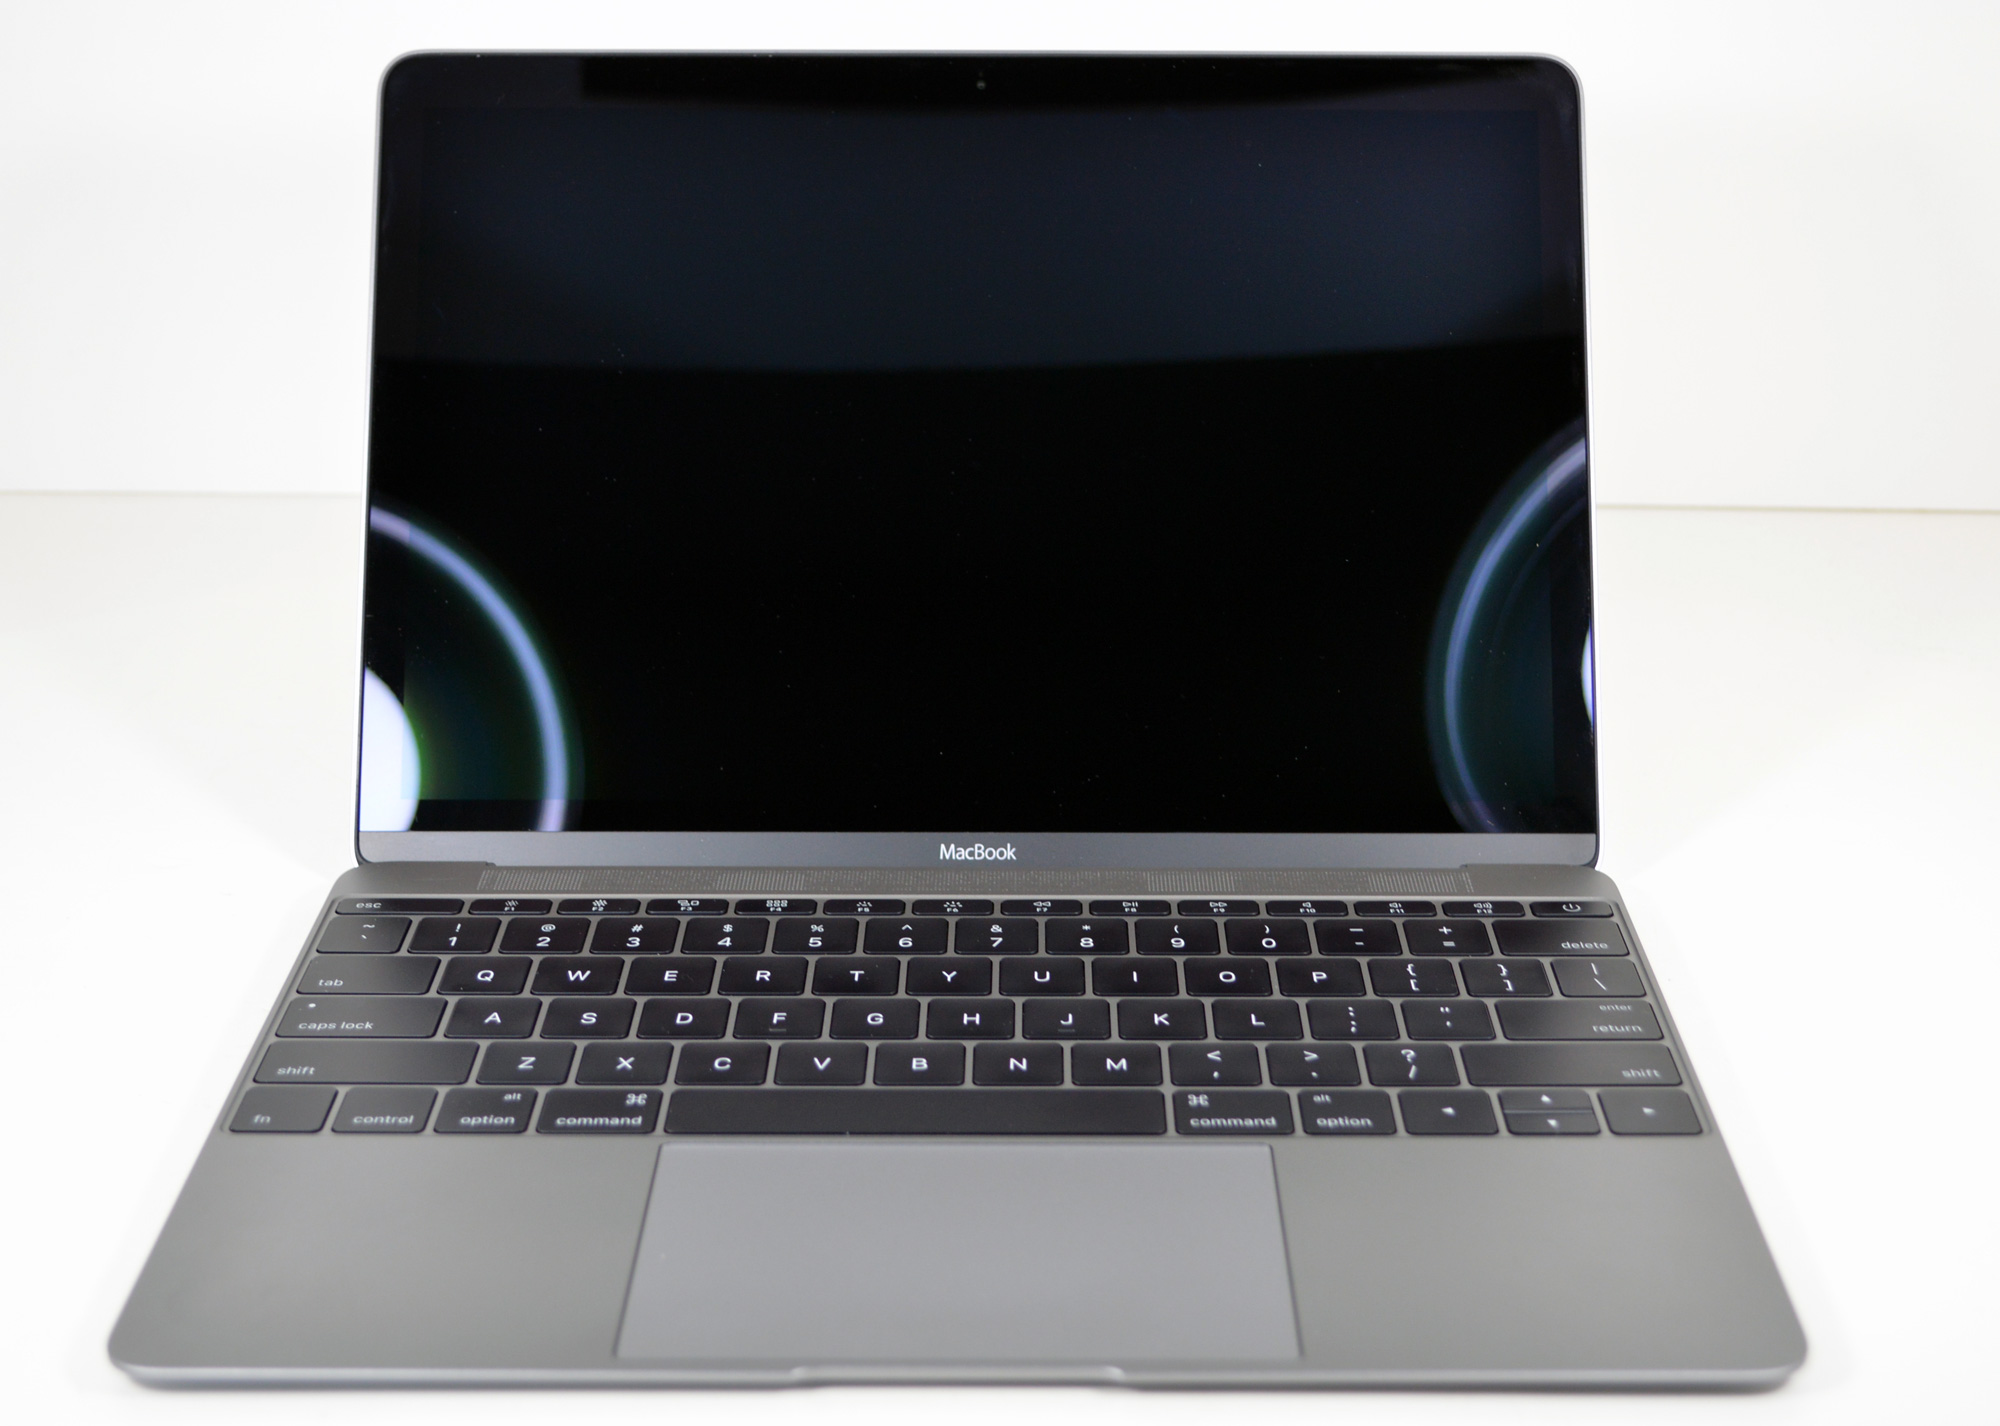 The Macbooks Design 2015 Macbook Review 2nd Try How To Find A Short Circuit In Logic Board For One Of Biggest Changes Compared Mba Is Fact That This Completely Fanless There Are No Fans Or Even Vents On